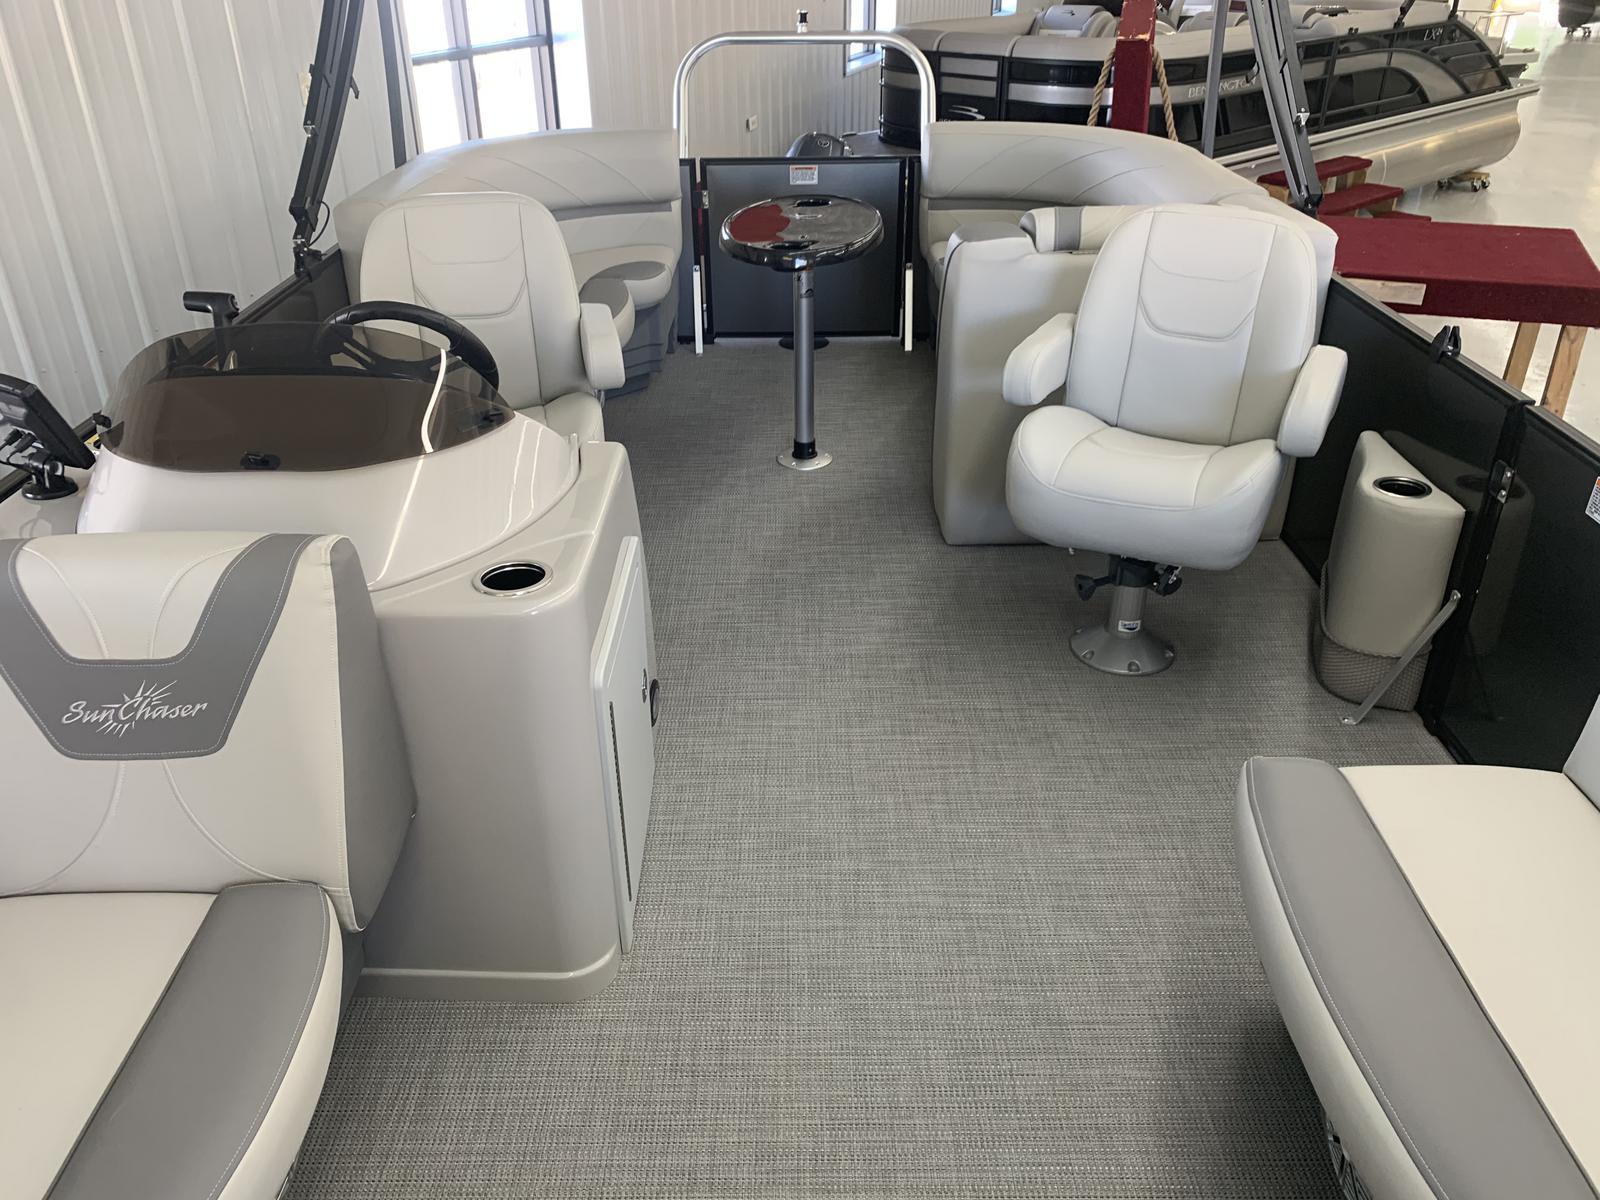 2020 SunChaser boat for sale, model of the boat is Geneva Cruise 20 LR DH & Image # 2 of 11